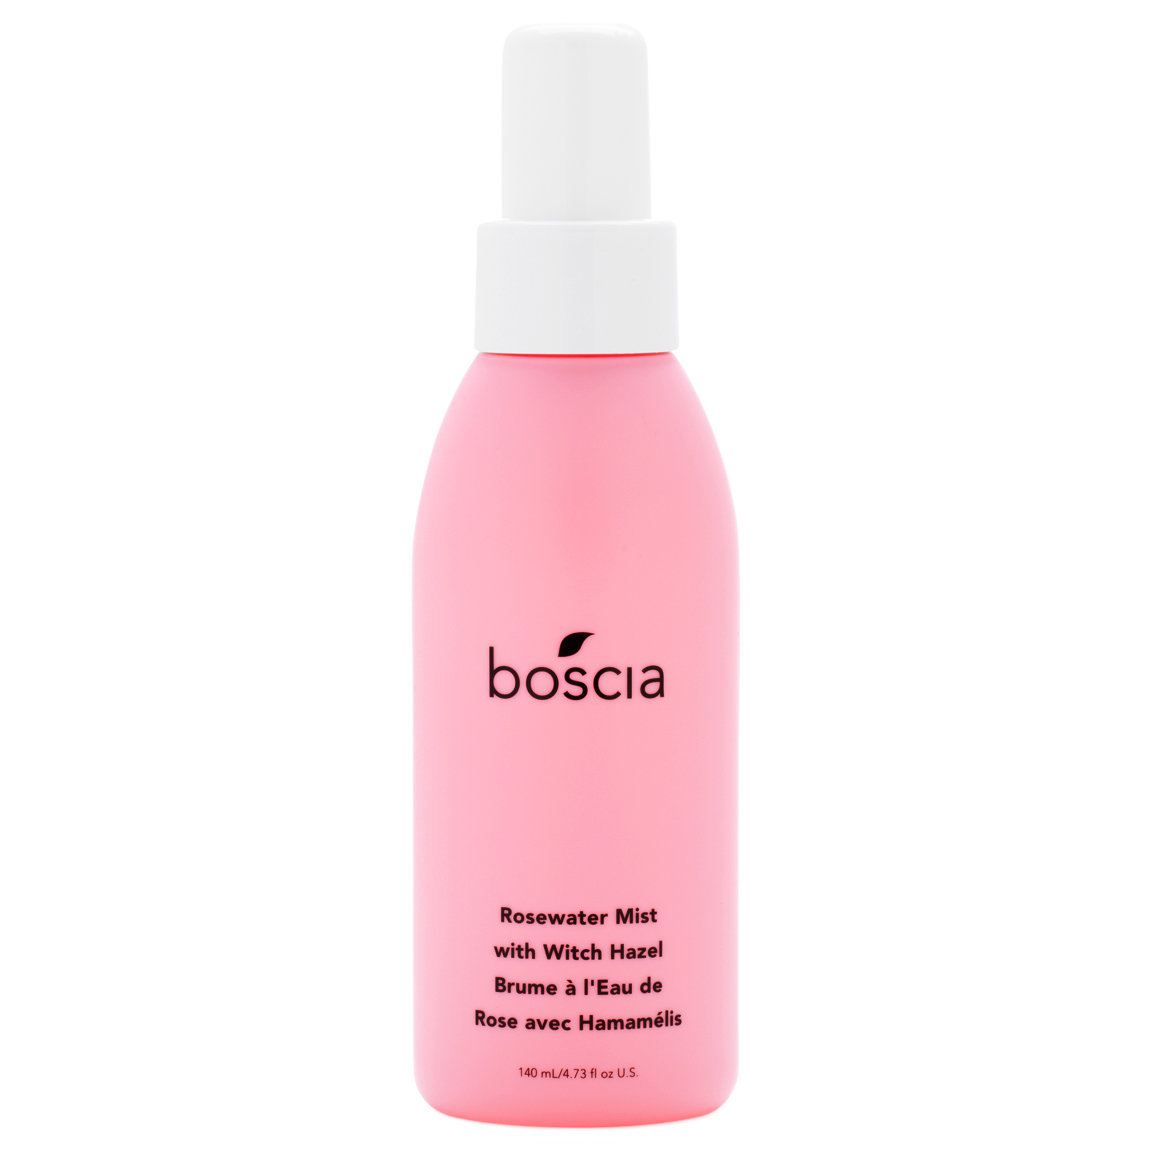 boscia Rosewater Mist with Witch Hazel product smear.